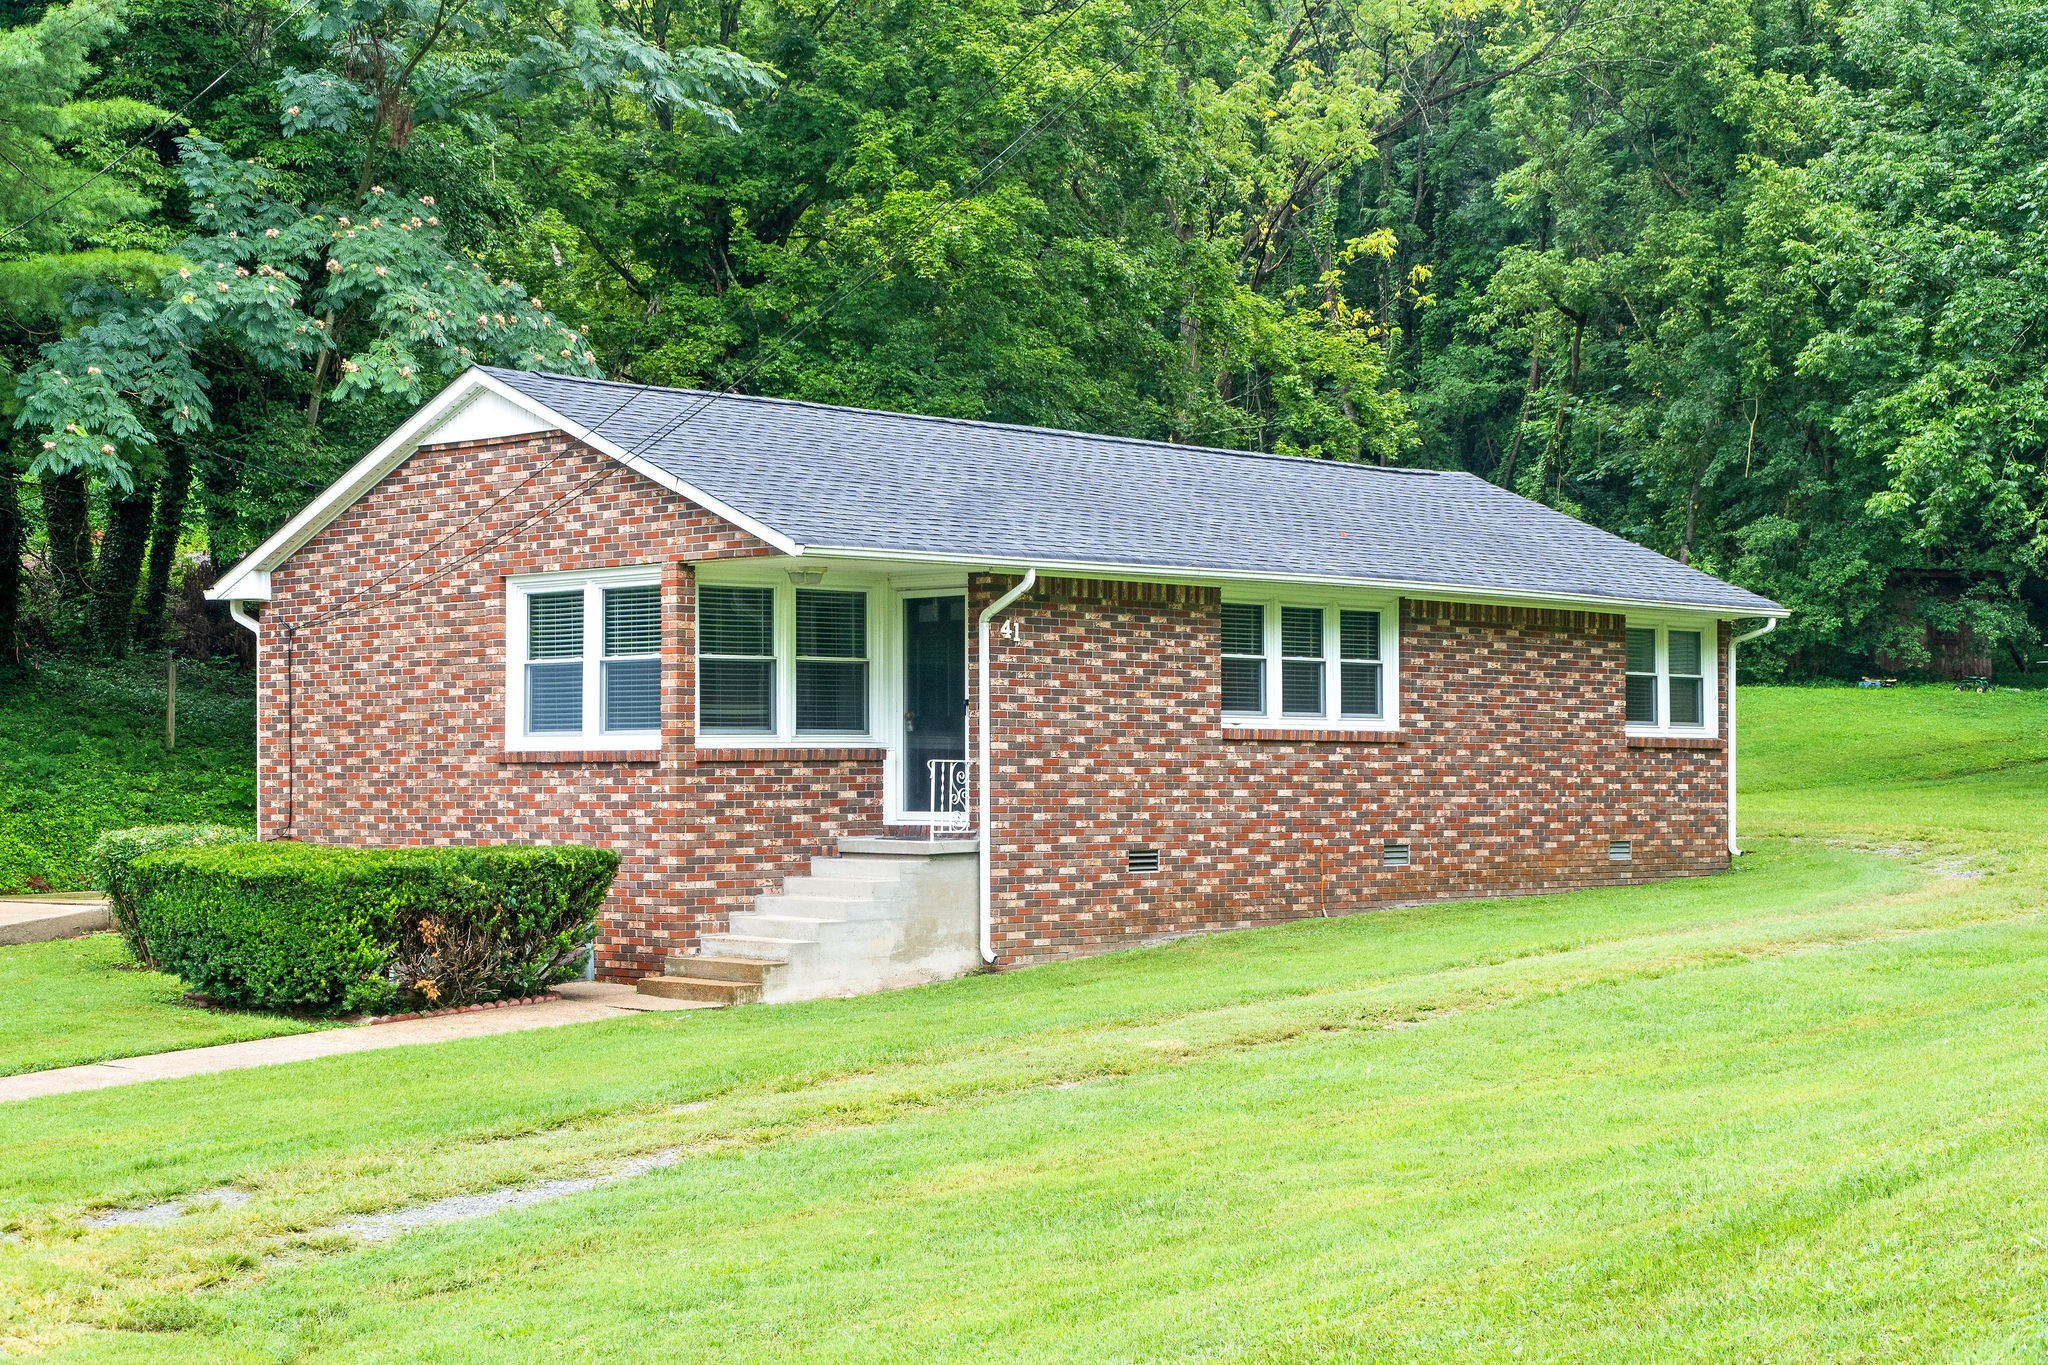 41 N Boone St Property Photo - Erin, TN real estate listing